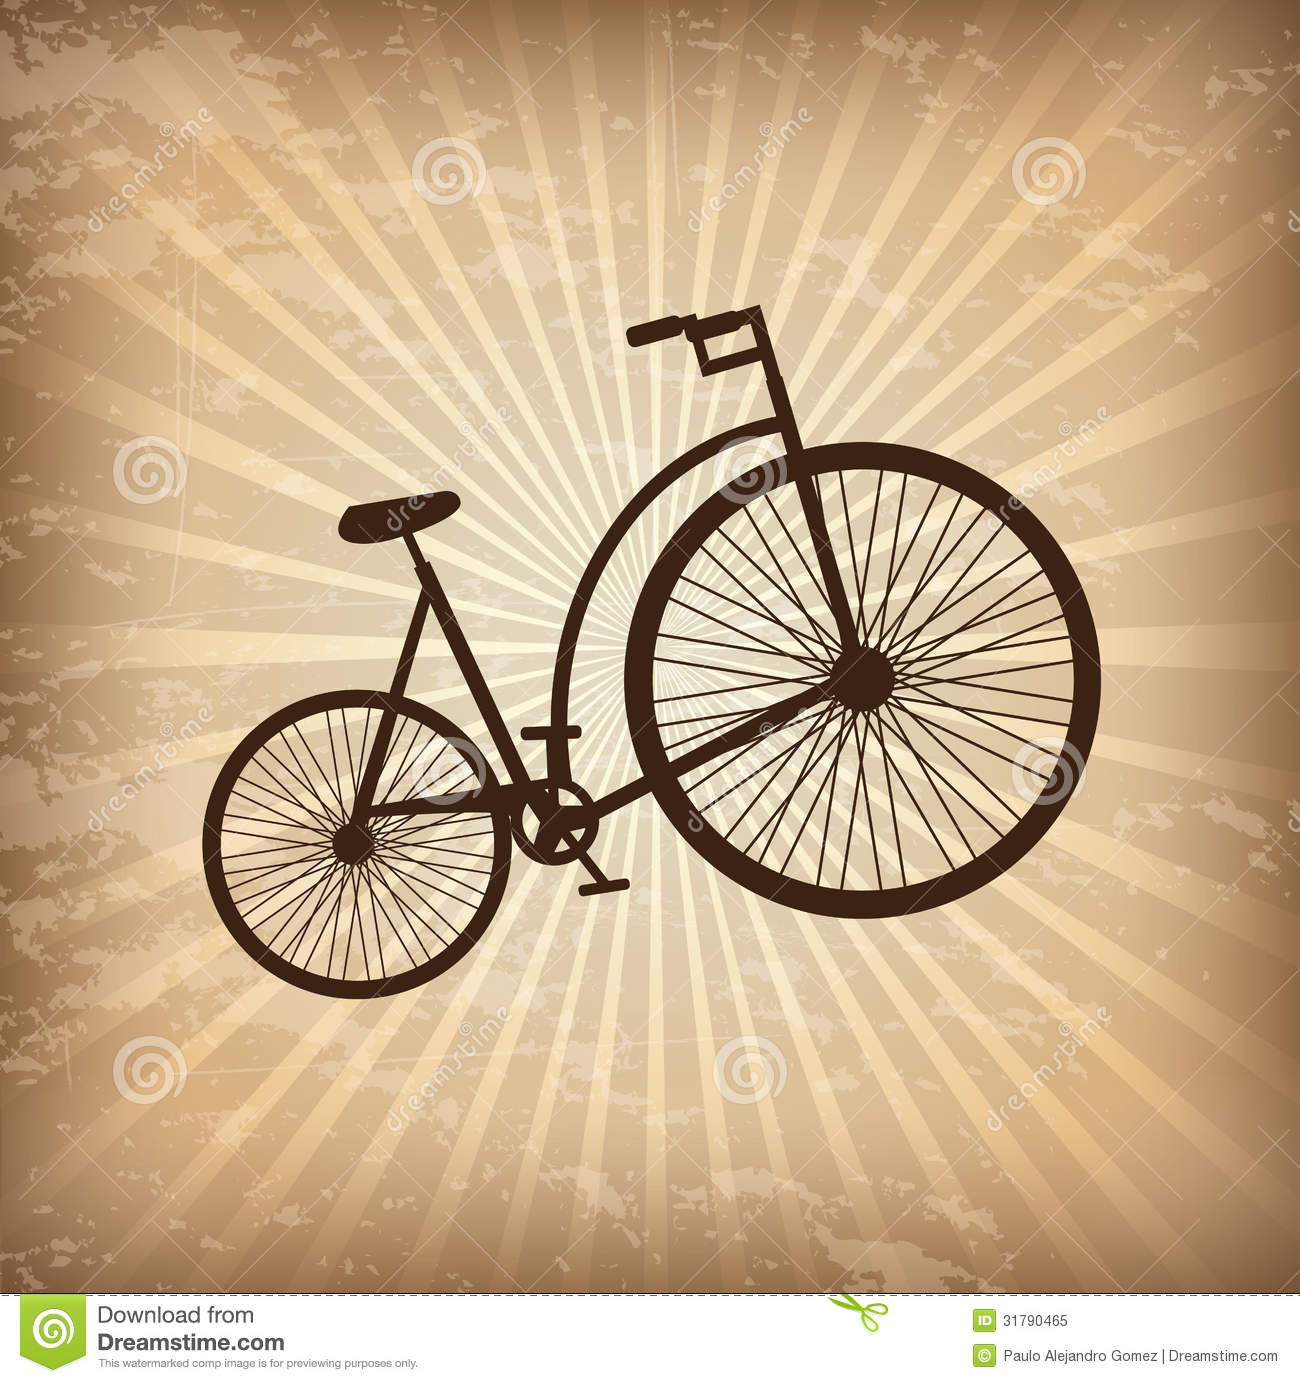 Bicycle Royalty Free Stock Photo - Image: 31790465